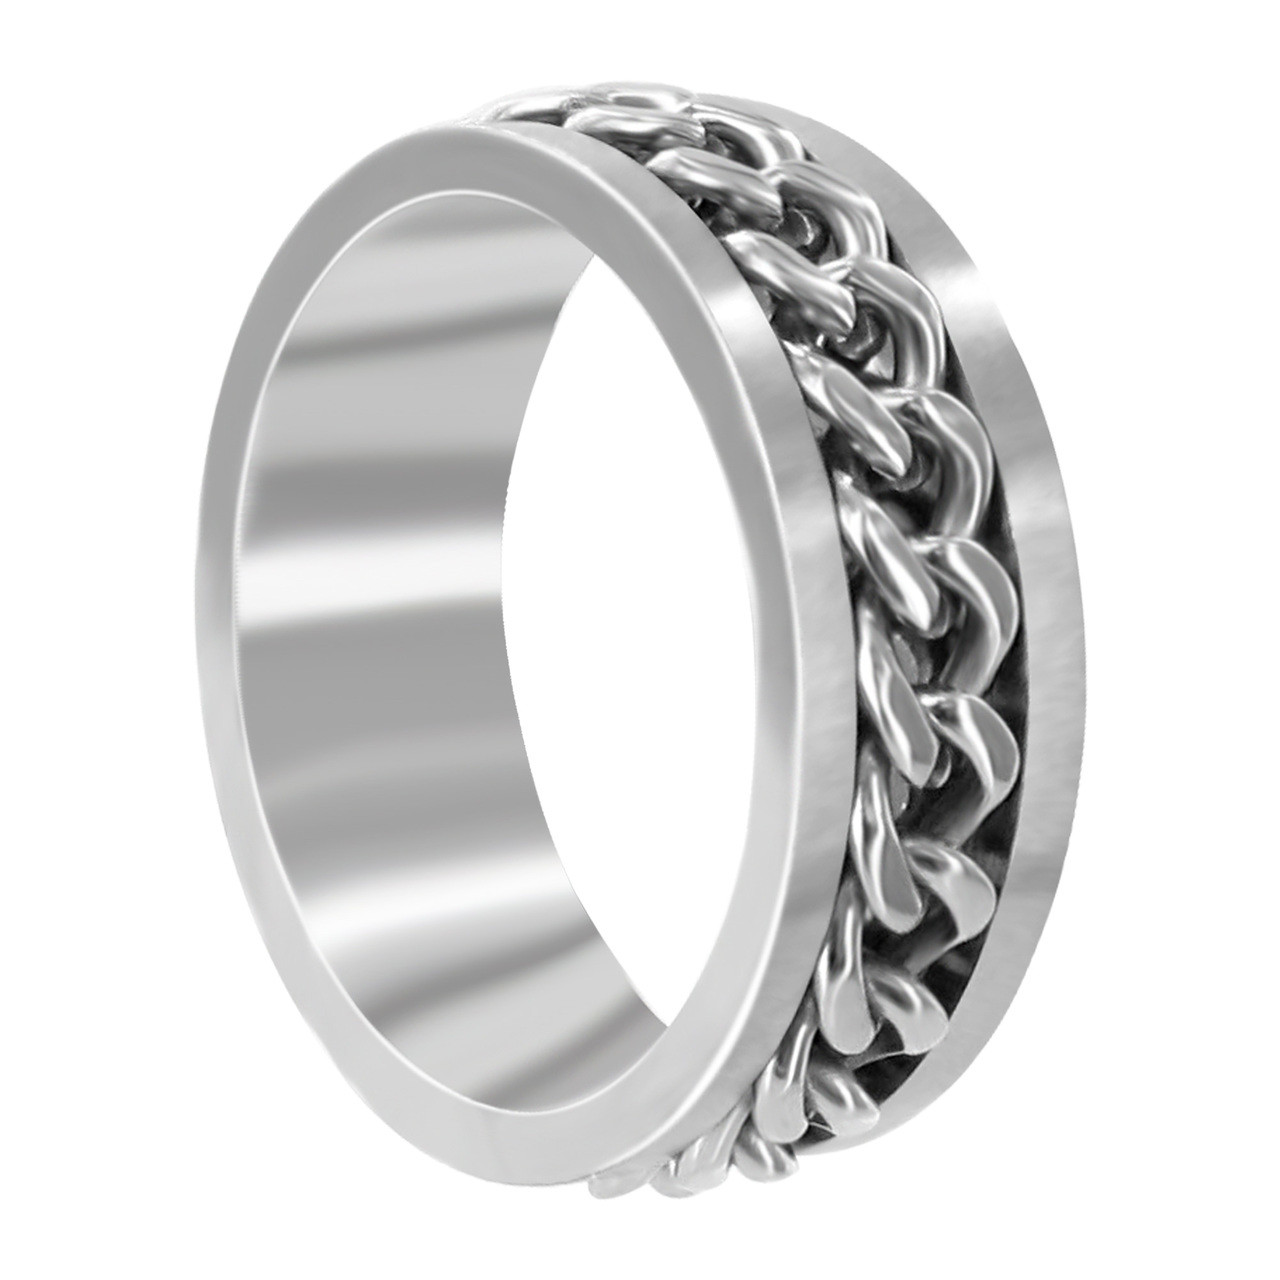 Stainless Steel 8mm Band with Chain Inlay